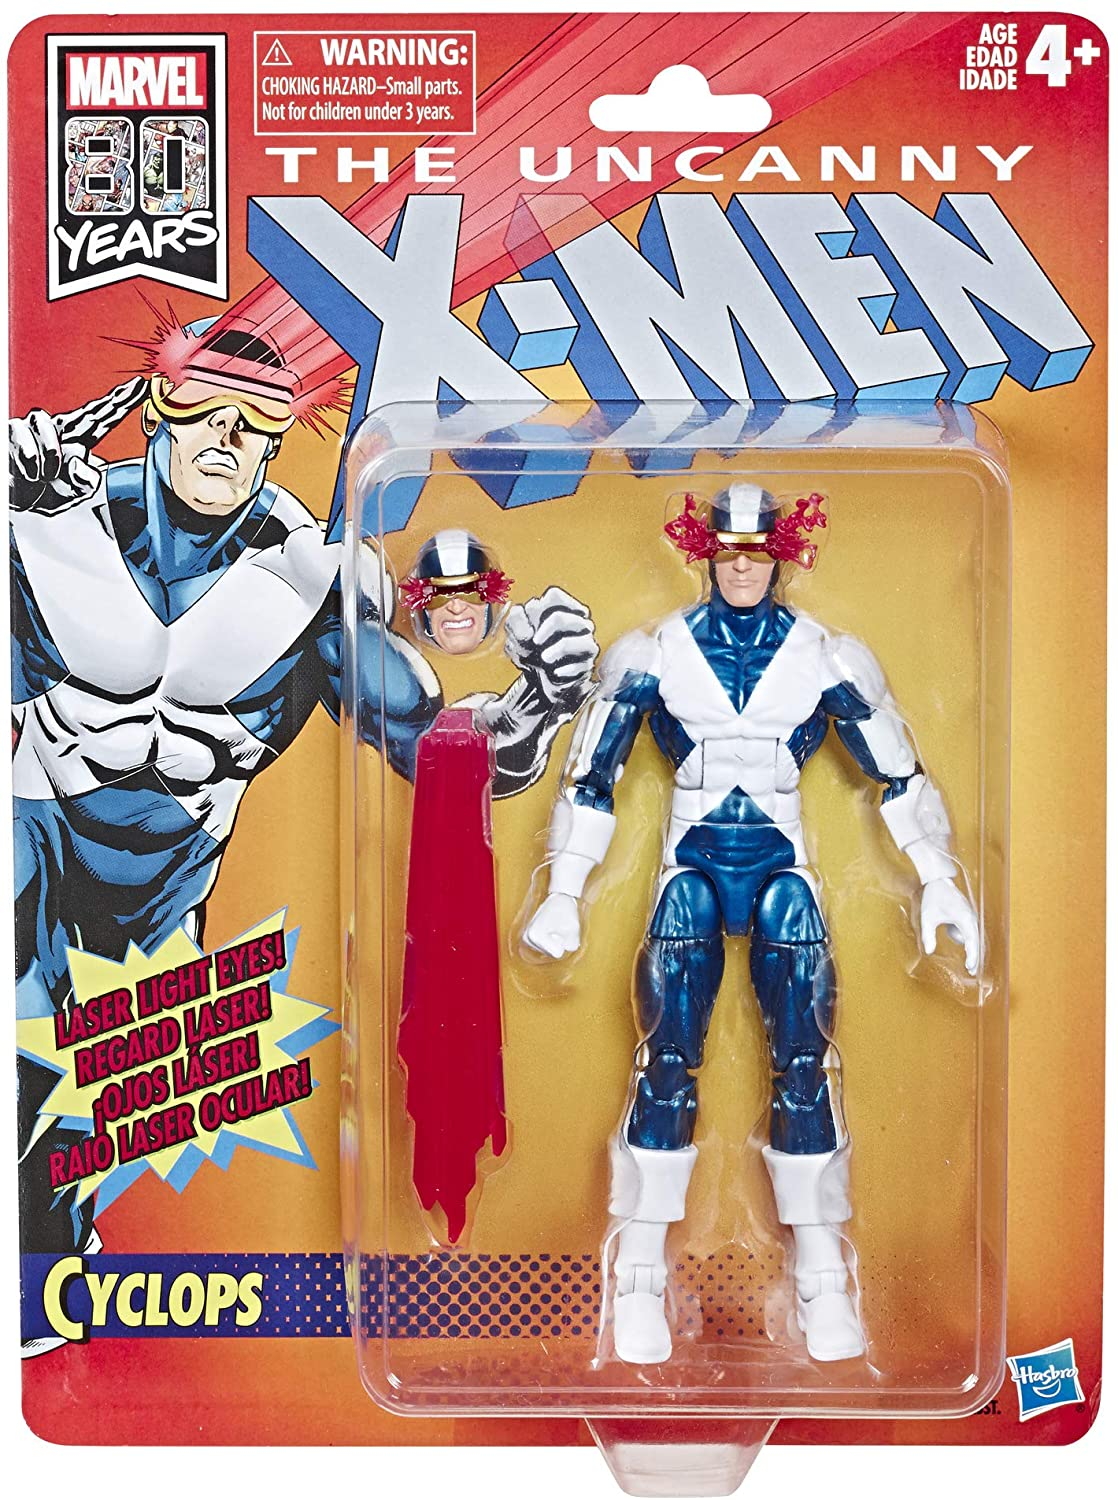 Marvel Retro Cyclops (X-Men) 80th Anniversary Oficial licenciado